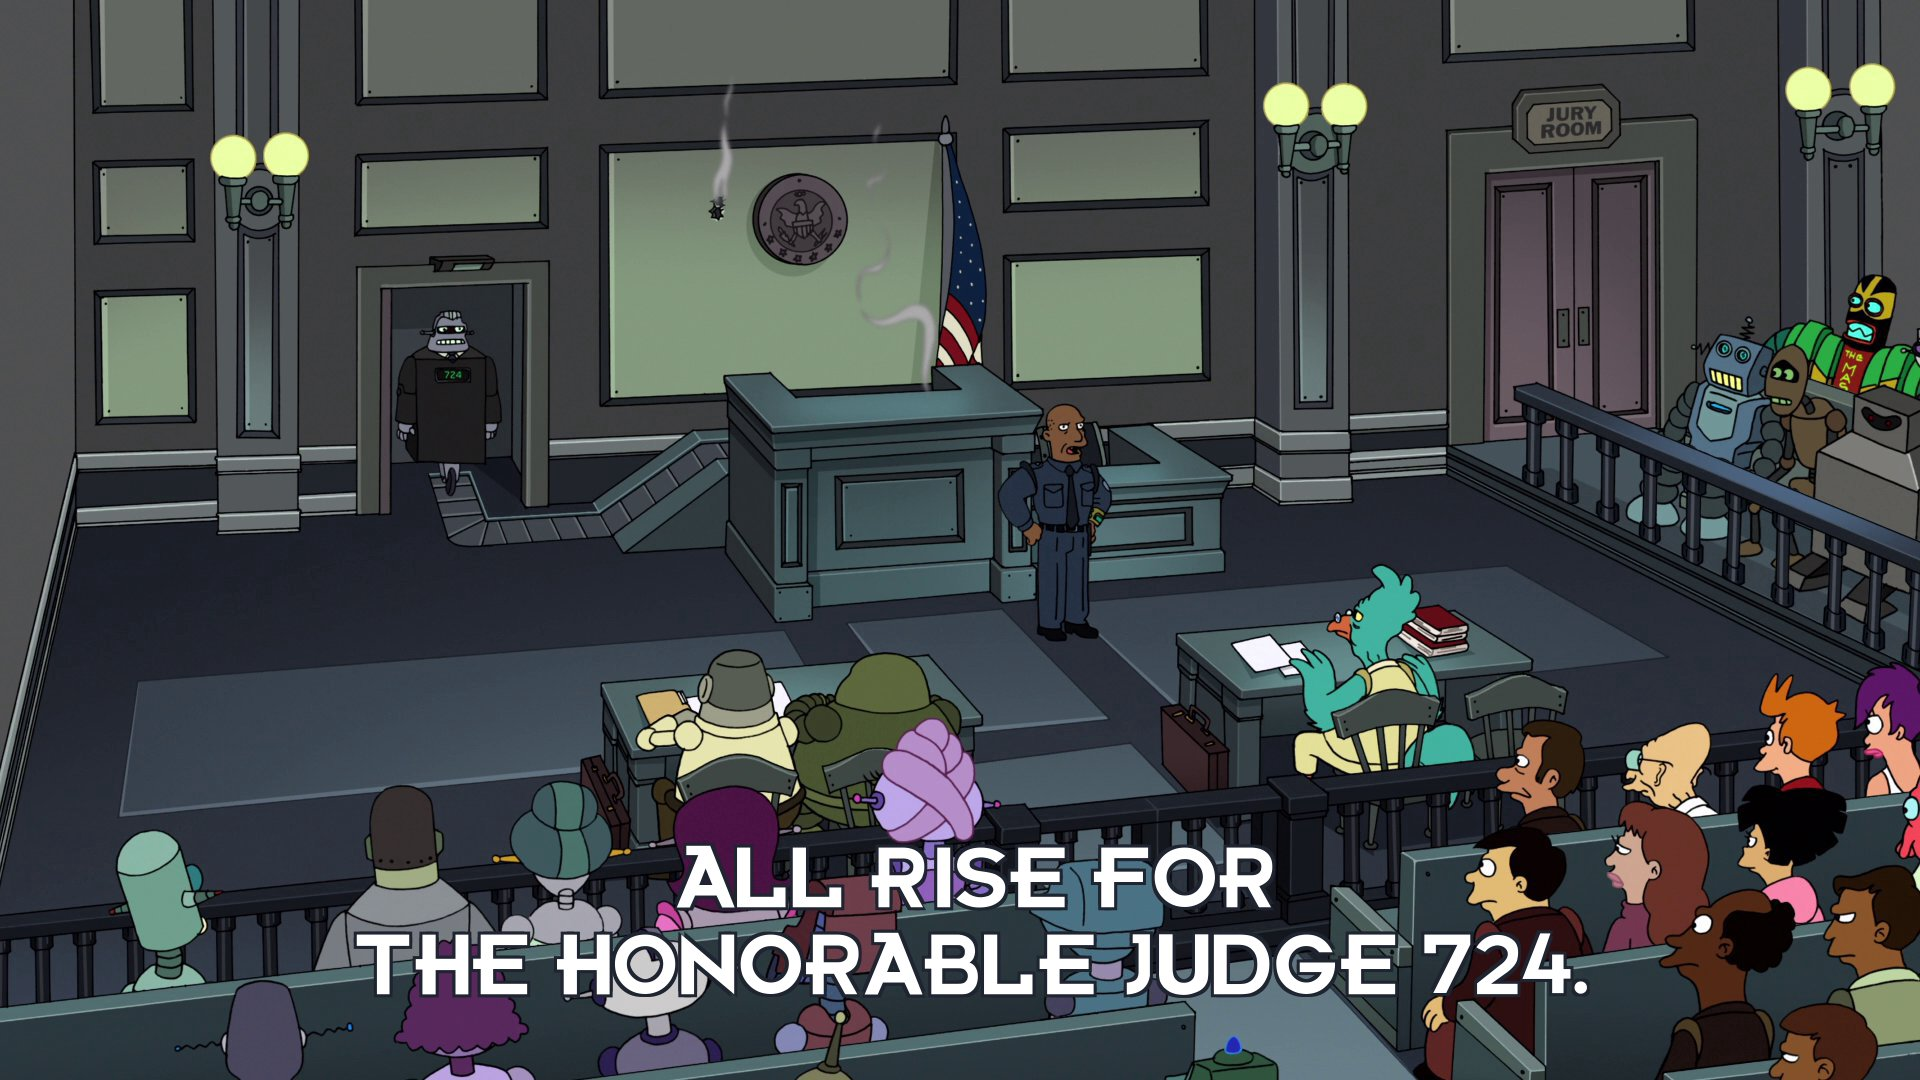 Bailiff: All rise for the honorable Judge 724.